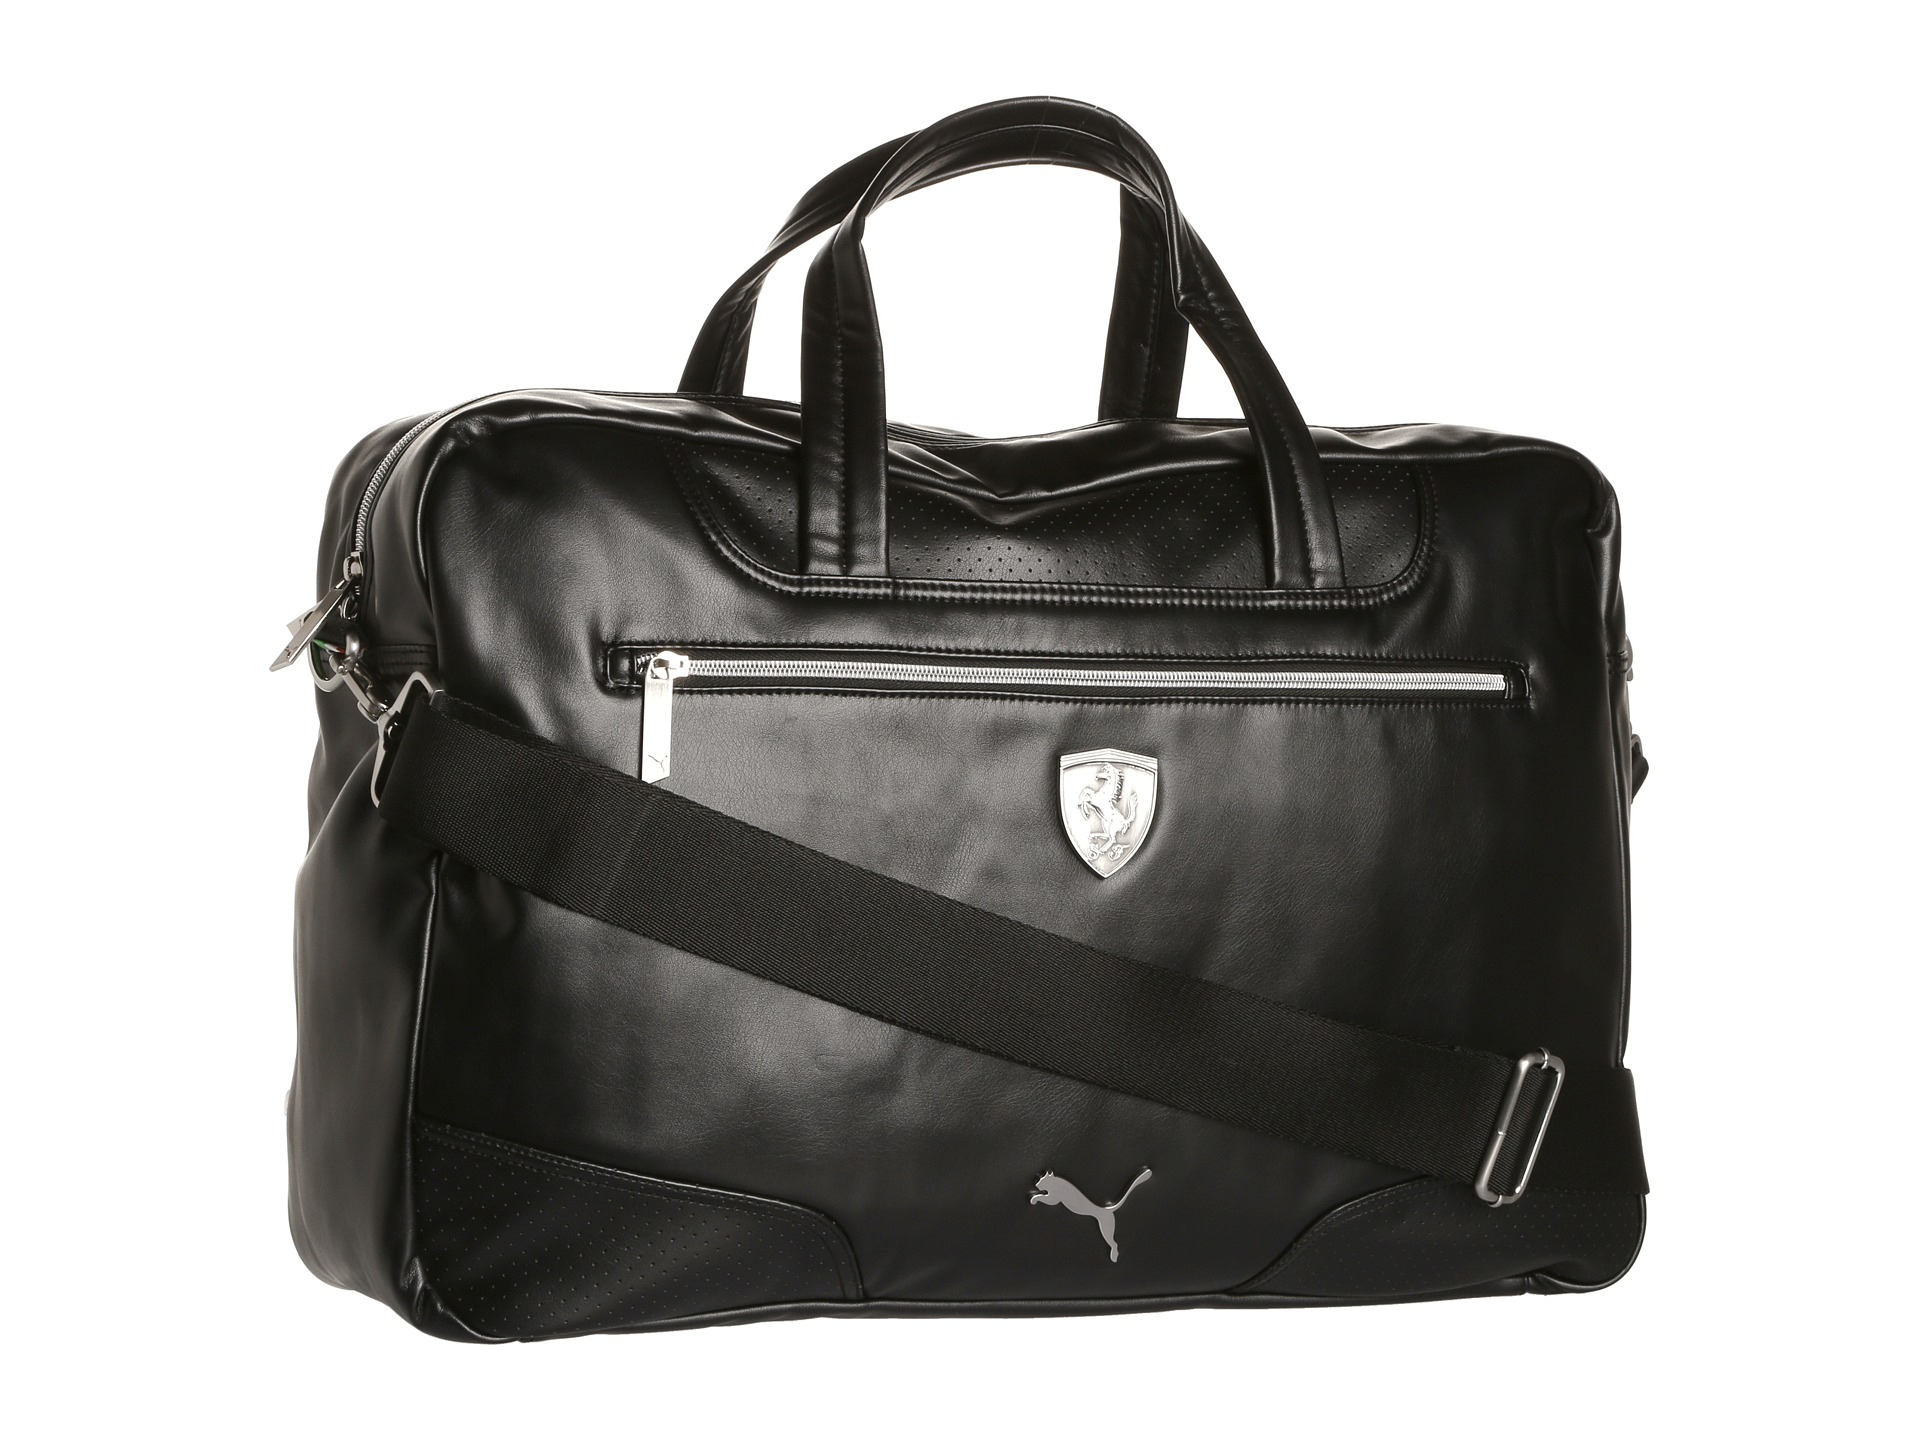 Puma Duffle Bag Leather | Sabis Bulldog Athletics